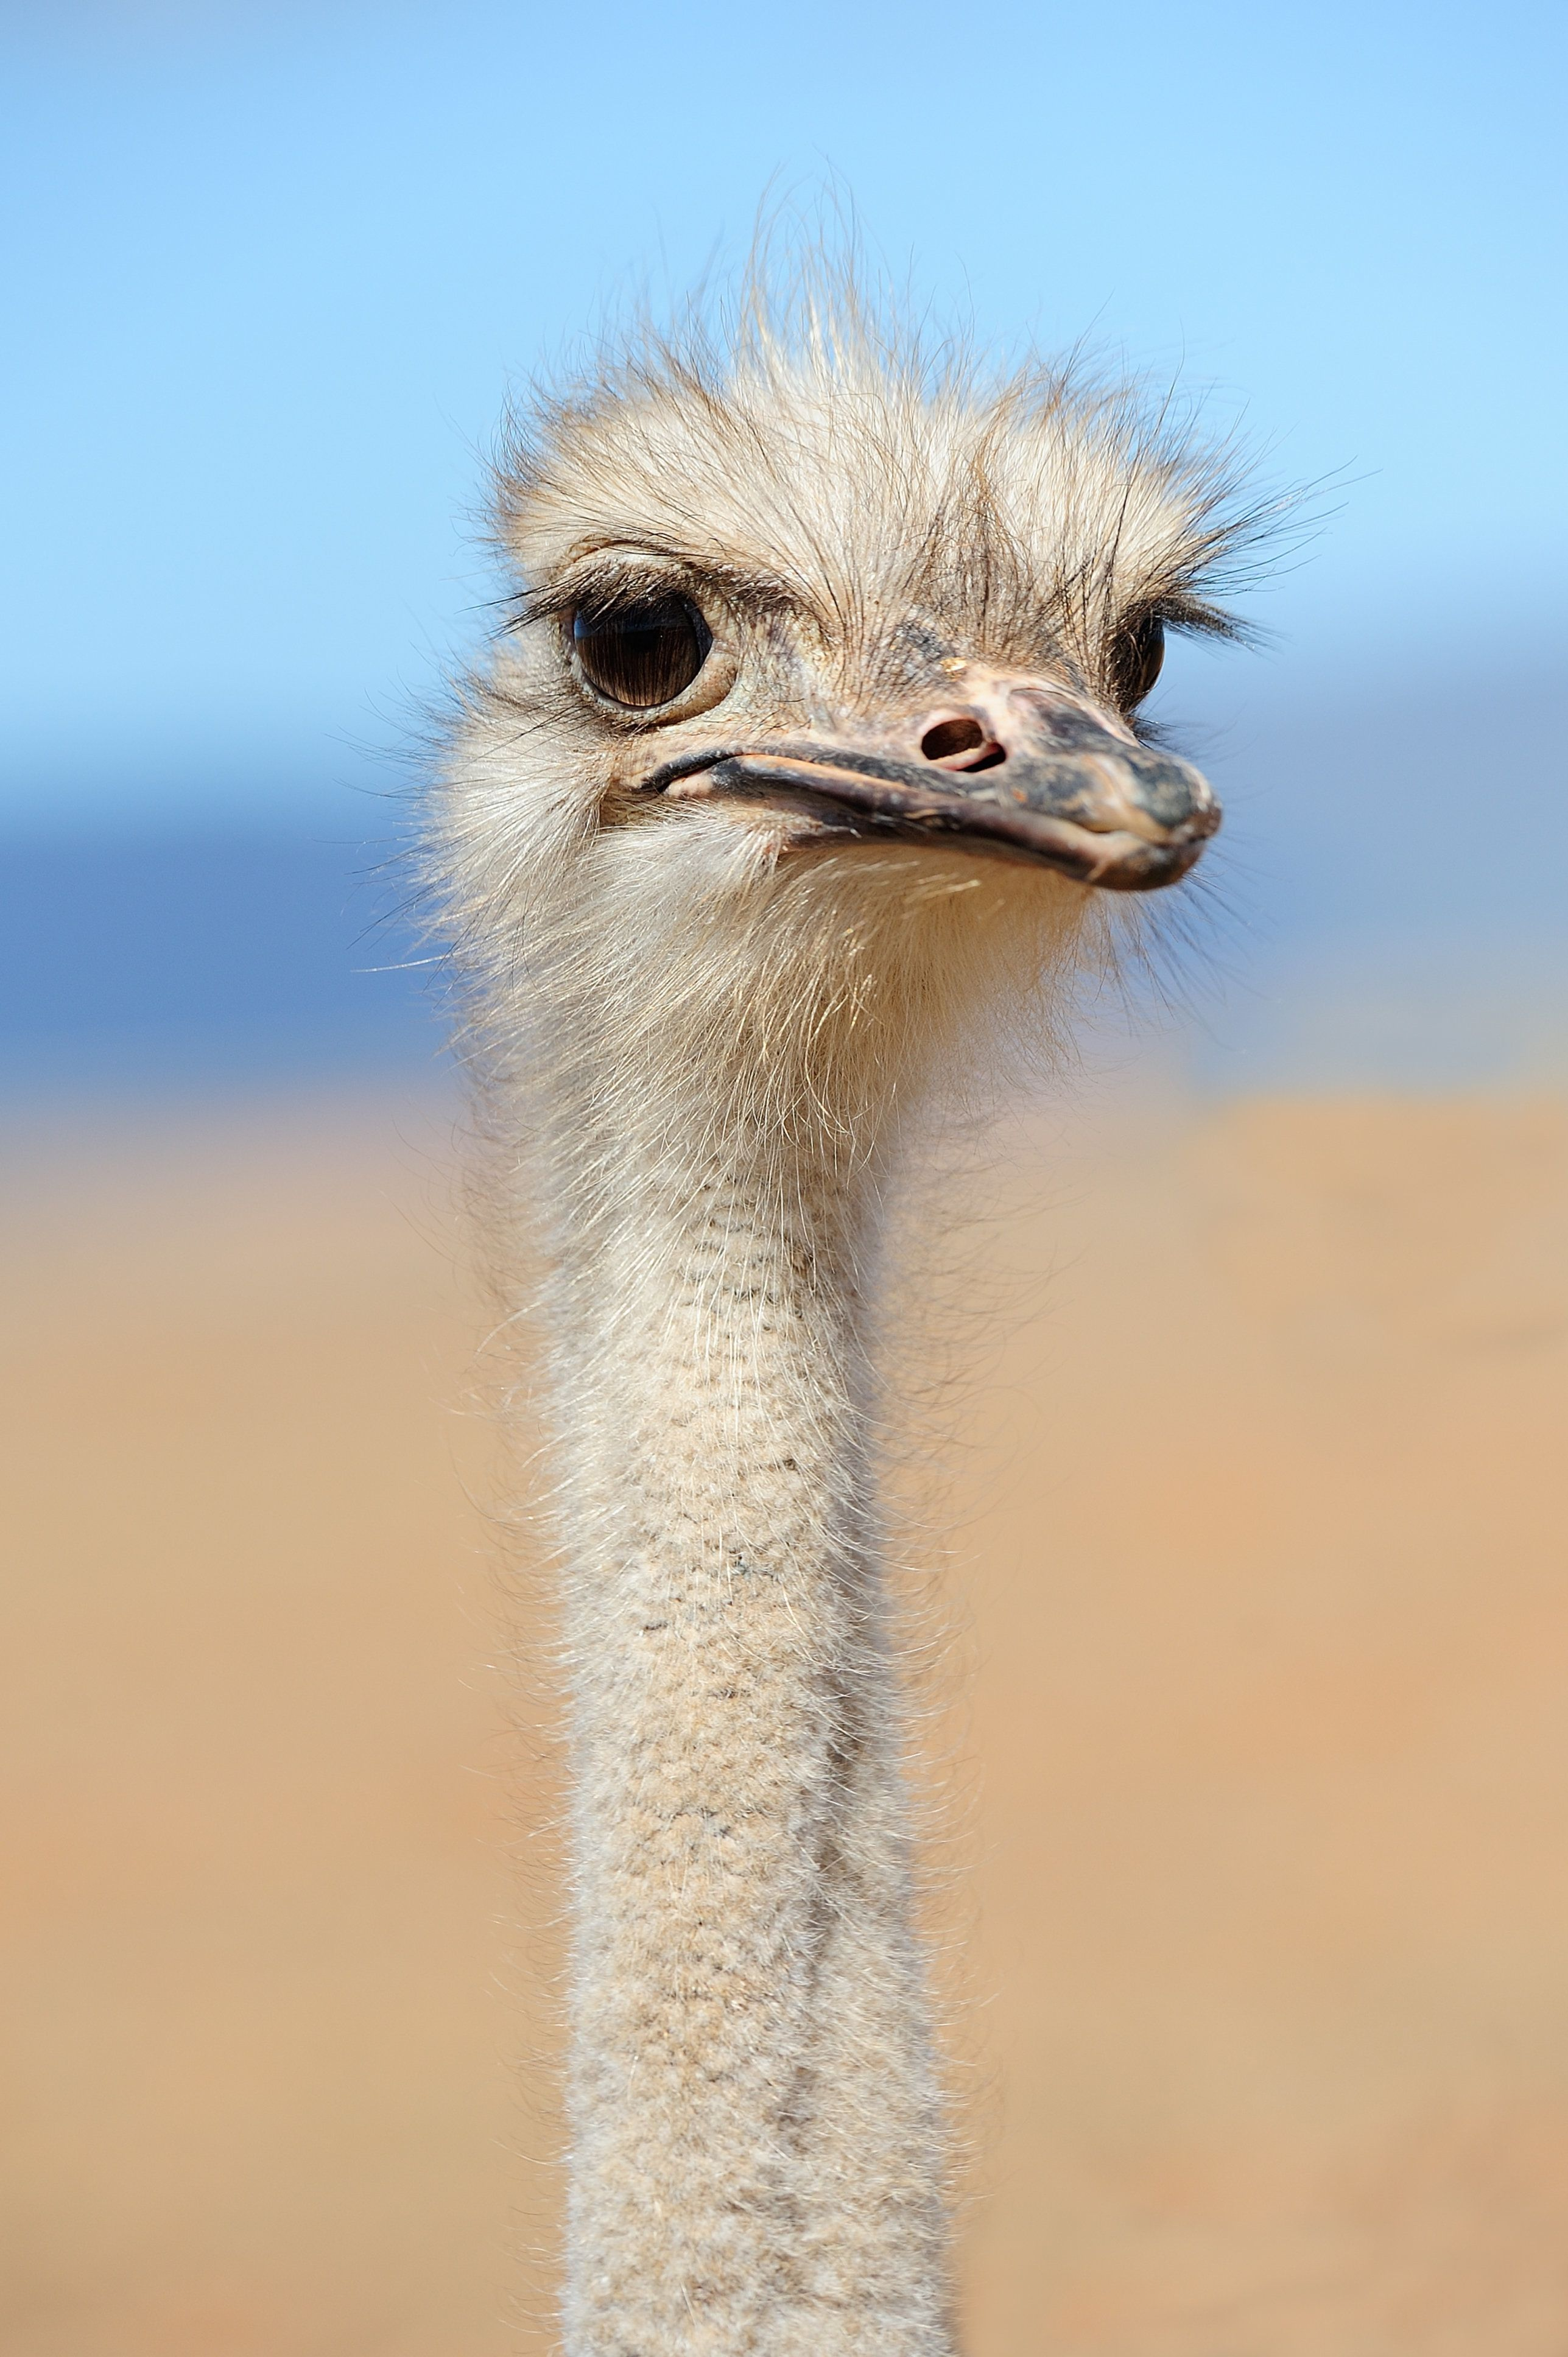 Ostrich, ostriches, flightless bird, bad hair day. blue sky, look out, attention, looking, birds head,concentration, alert, long neck,